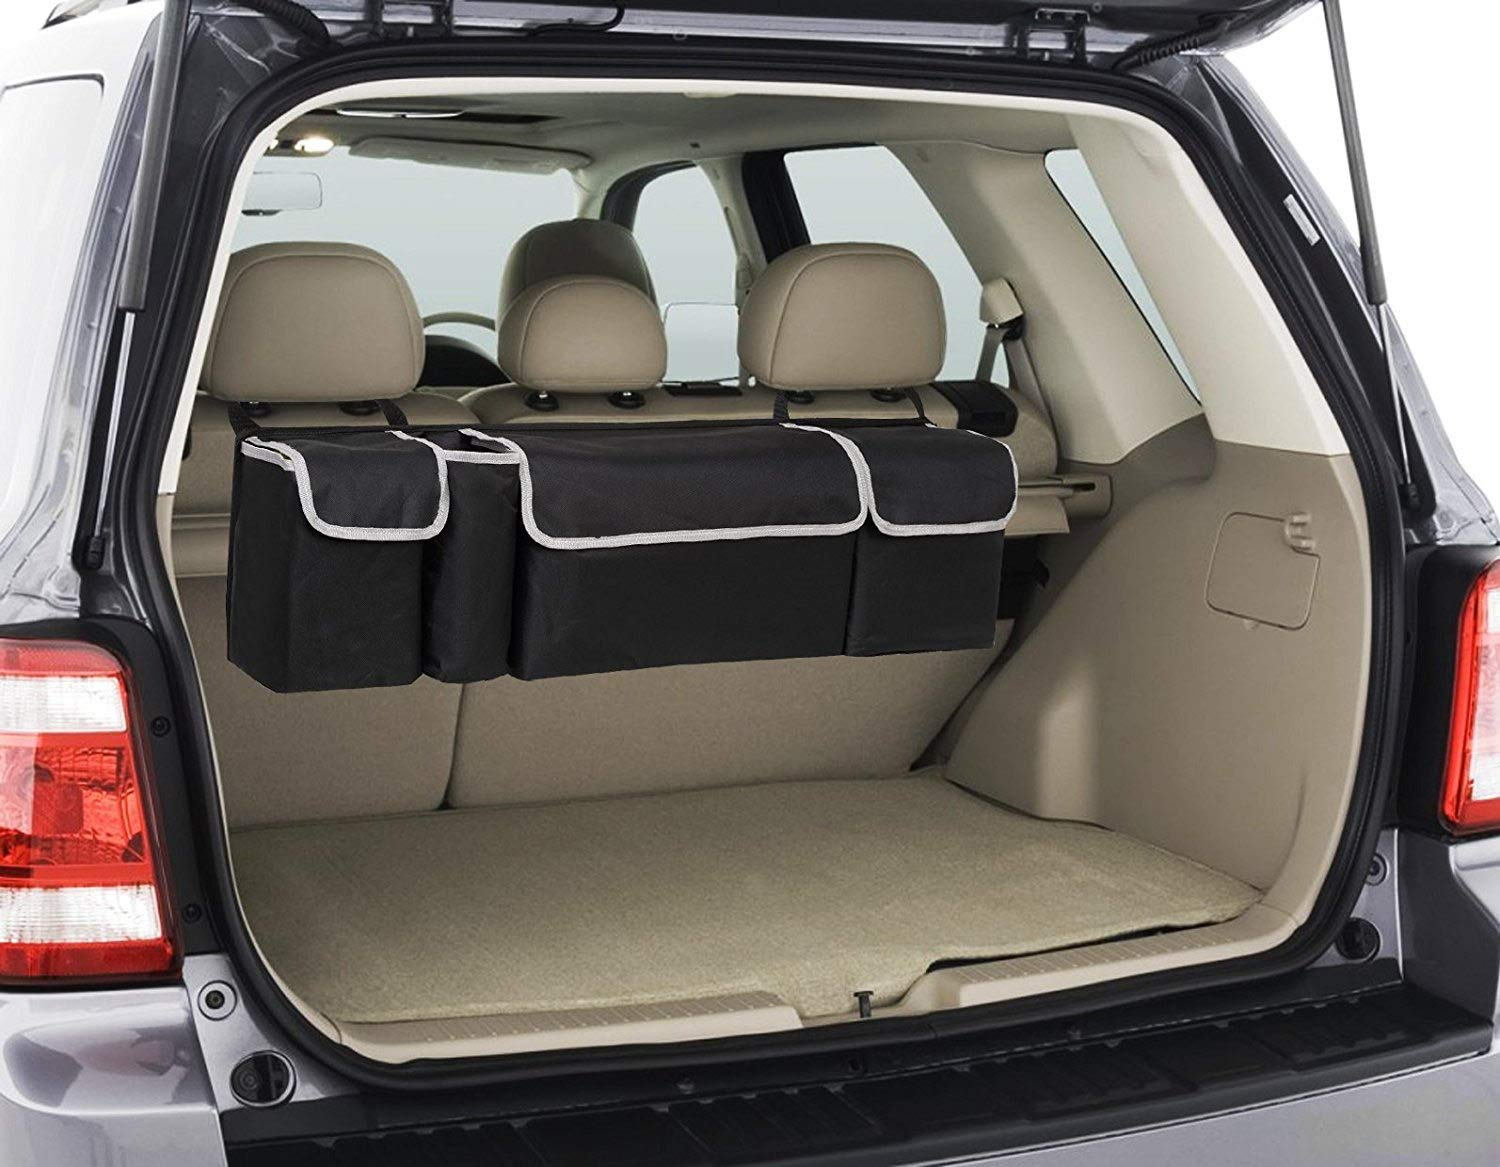 DIDIBABA Car Back seat Organizer Travel Storage Bag 4 Compartment Multi Pocket Car Trunk Organizer Car Holders for SUV,Truck,Auto,Minivan